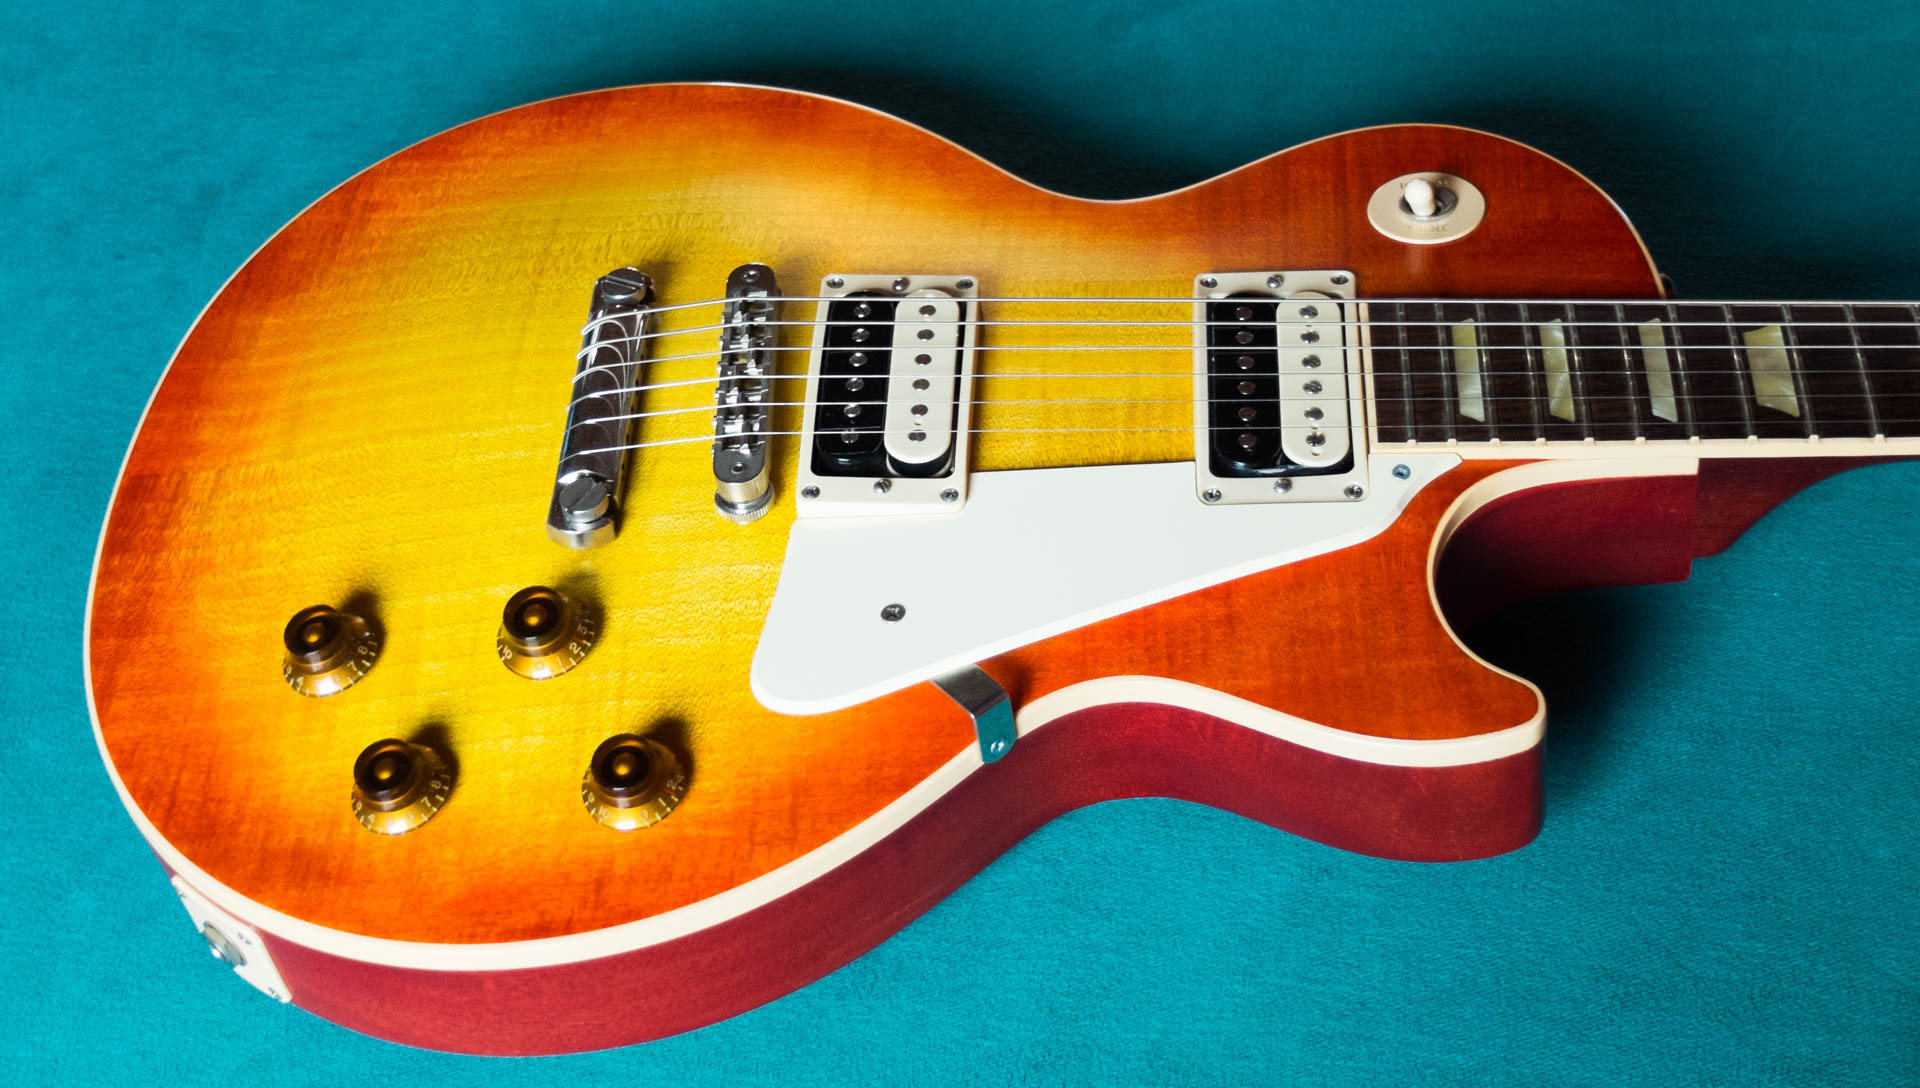 Accrocher Sa Guitare Au Mur Luxe Images Les Paul Standard Faded 60s Neck Gibson Audiofanzine